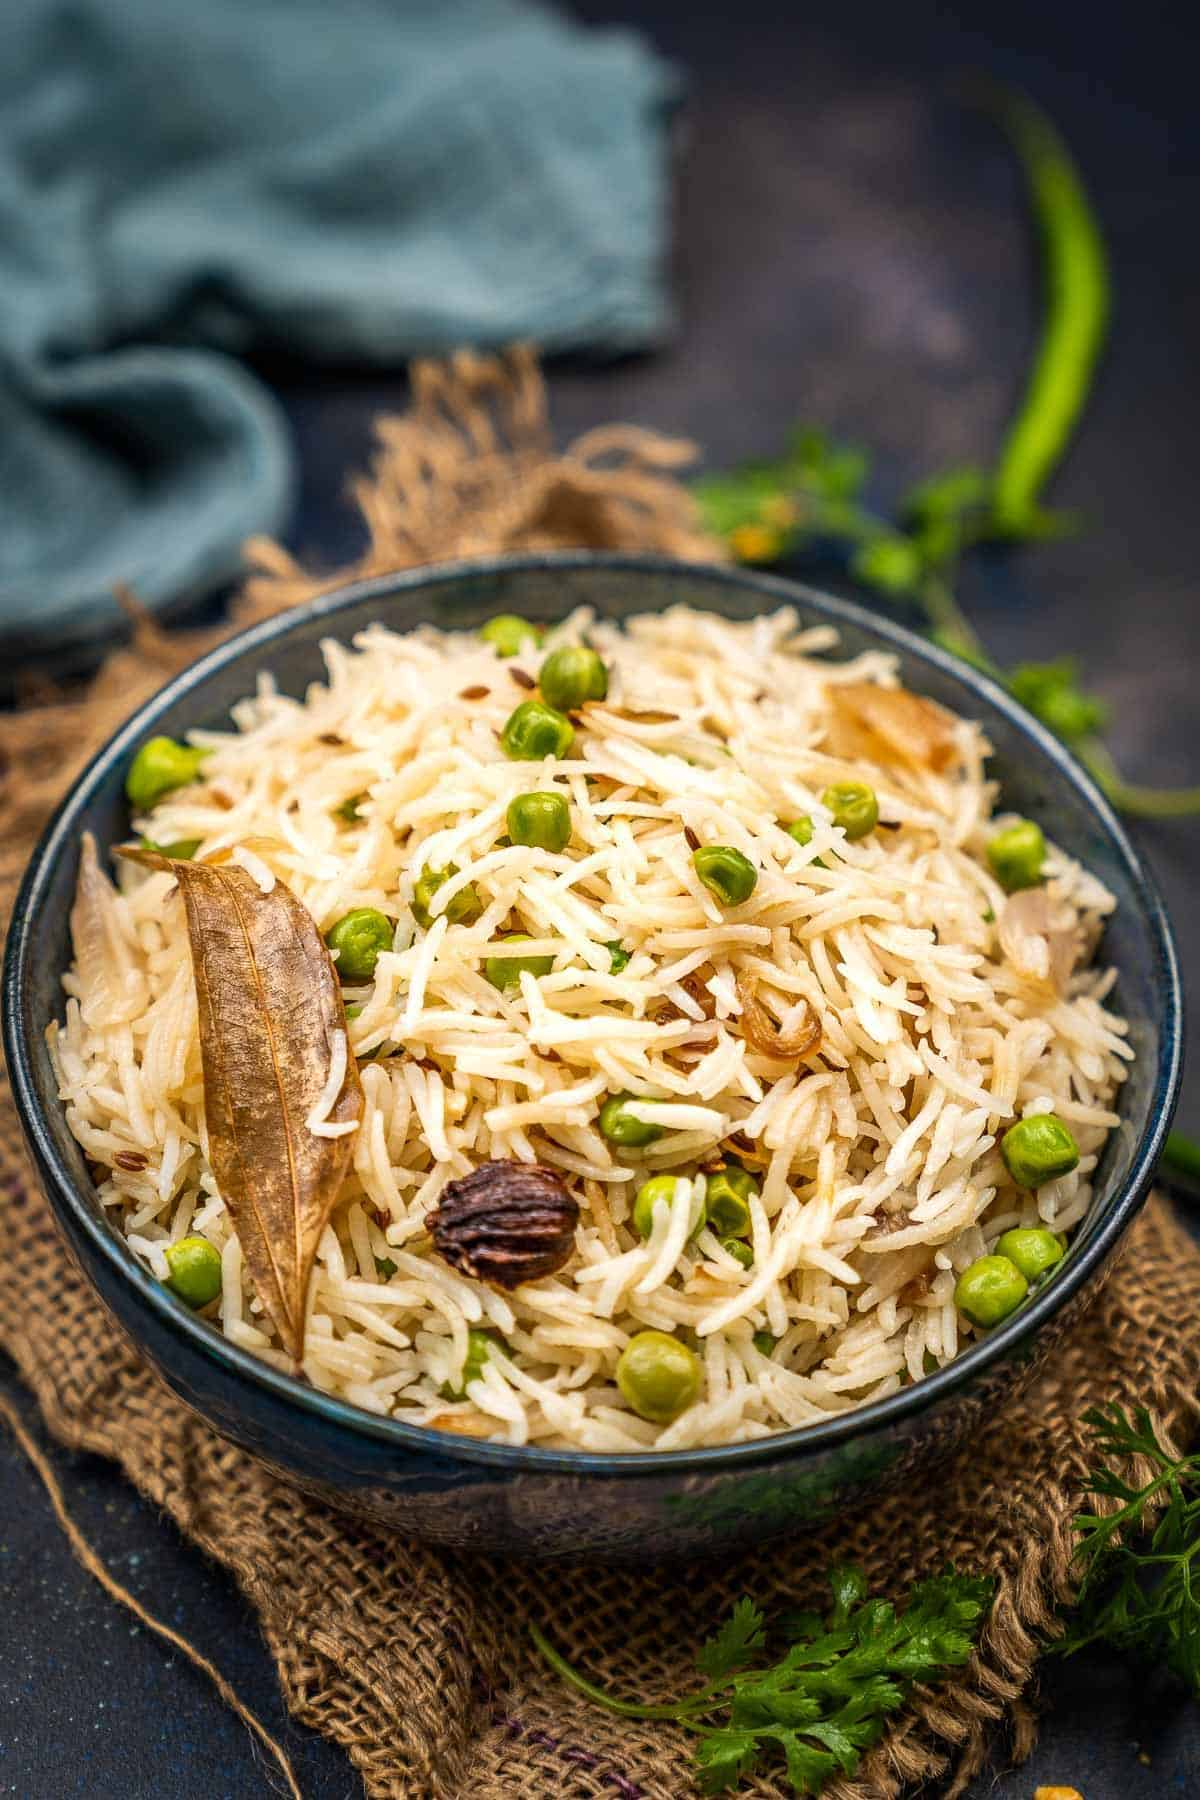 Peas pulao served in a bowl.